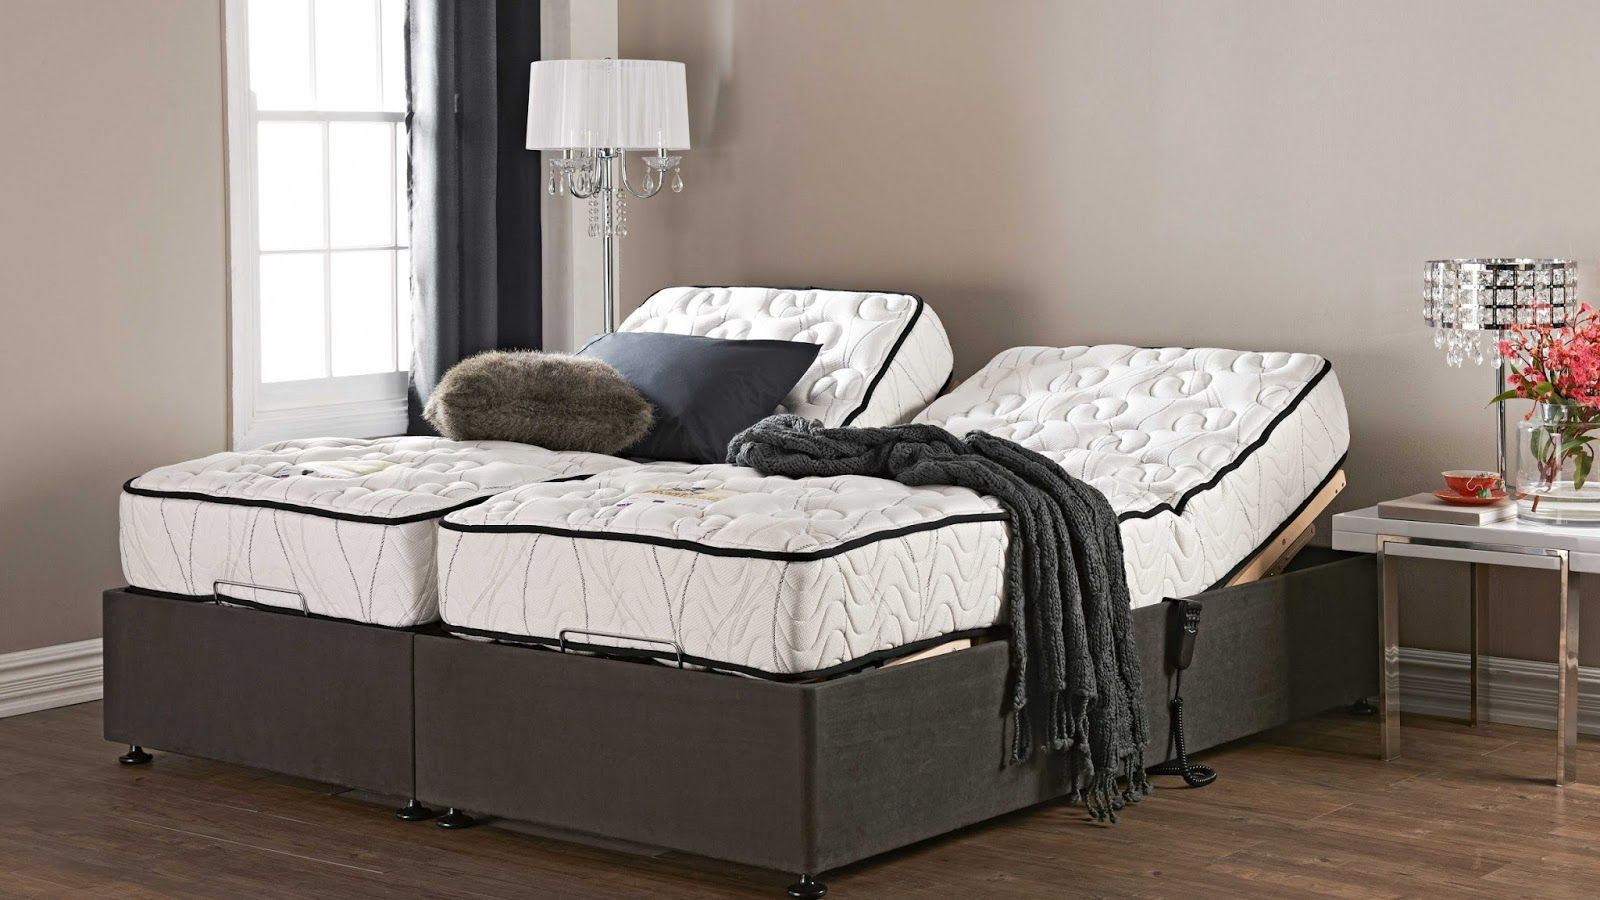 Mattress split king adjustable bed frame with nightstand for King size bed frame and mattress